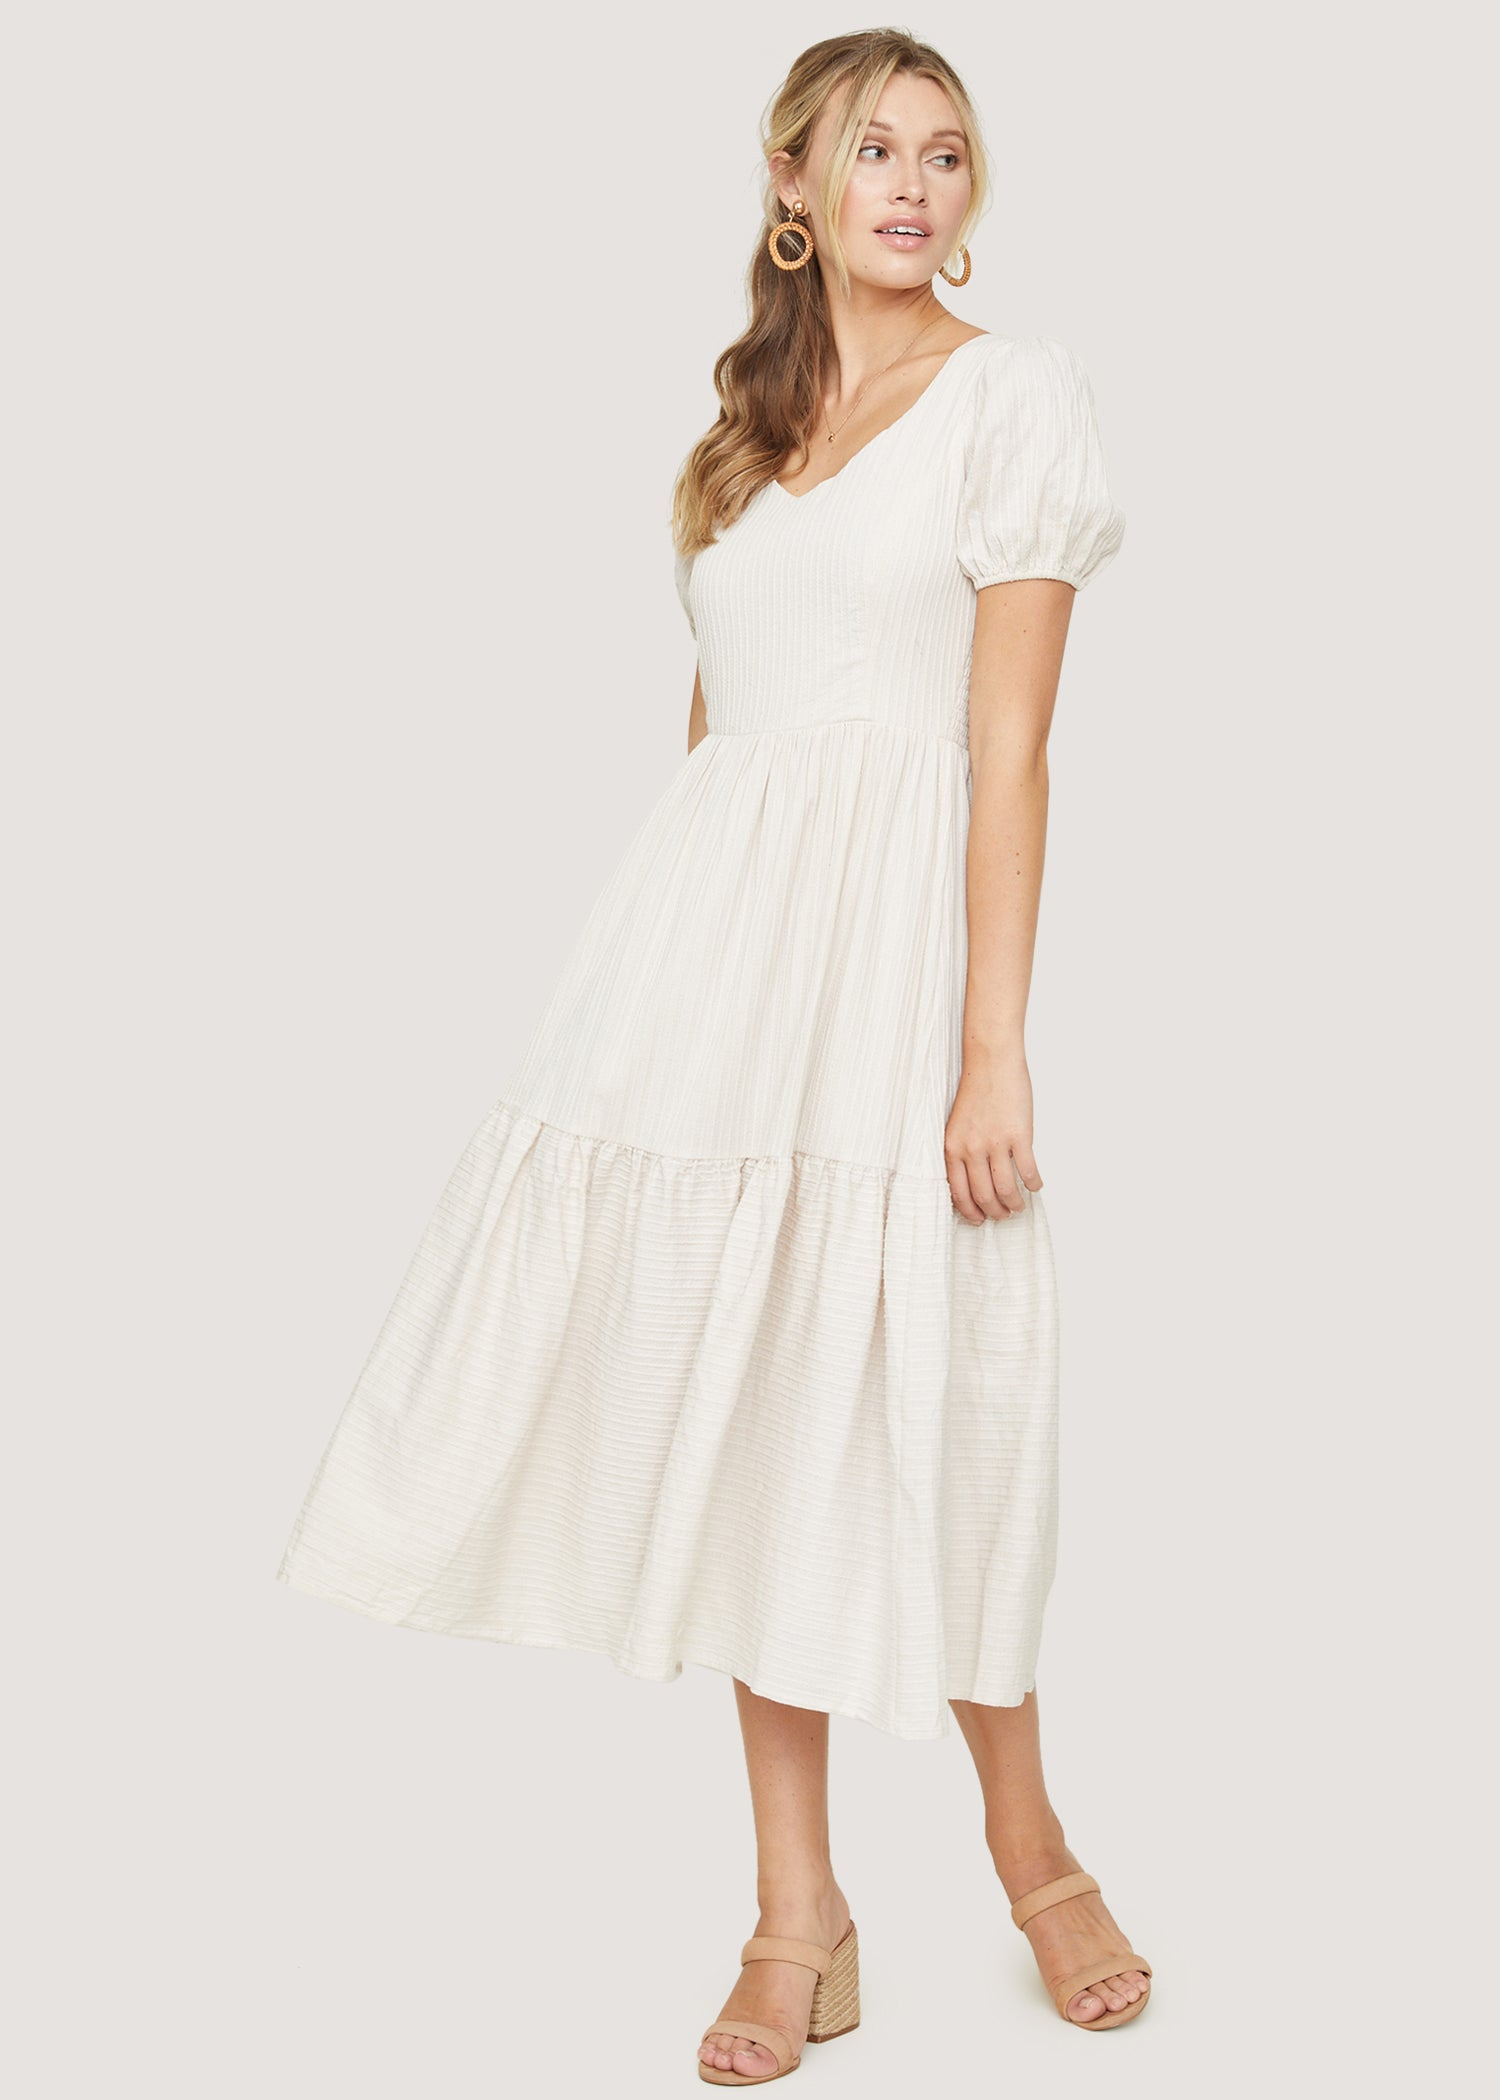 Fly Away Midi Dress